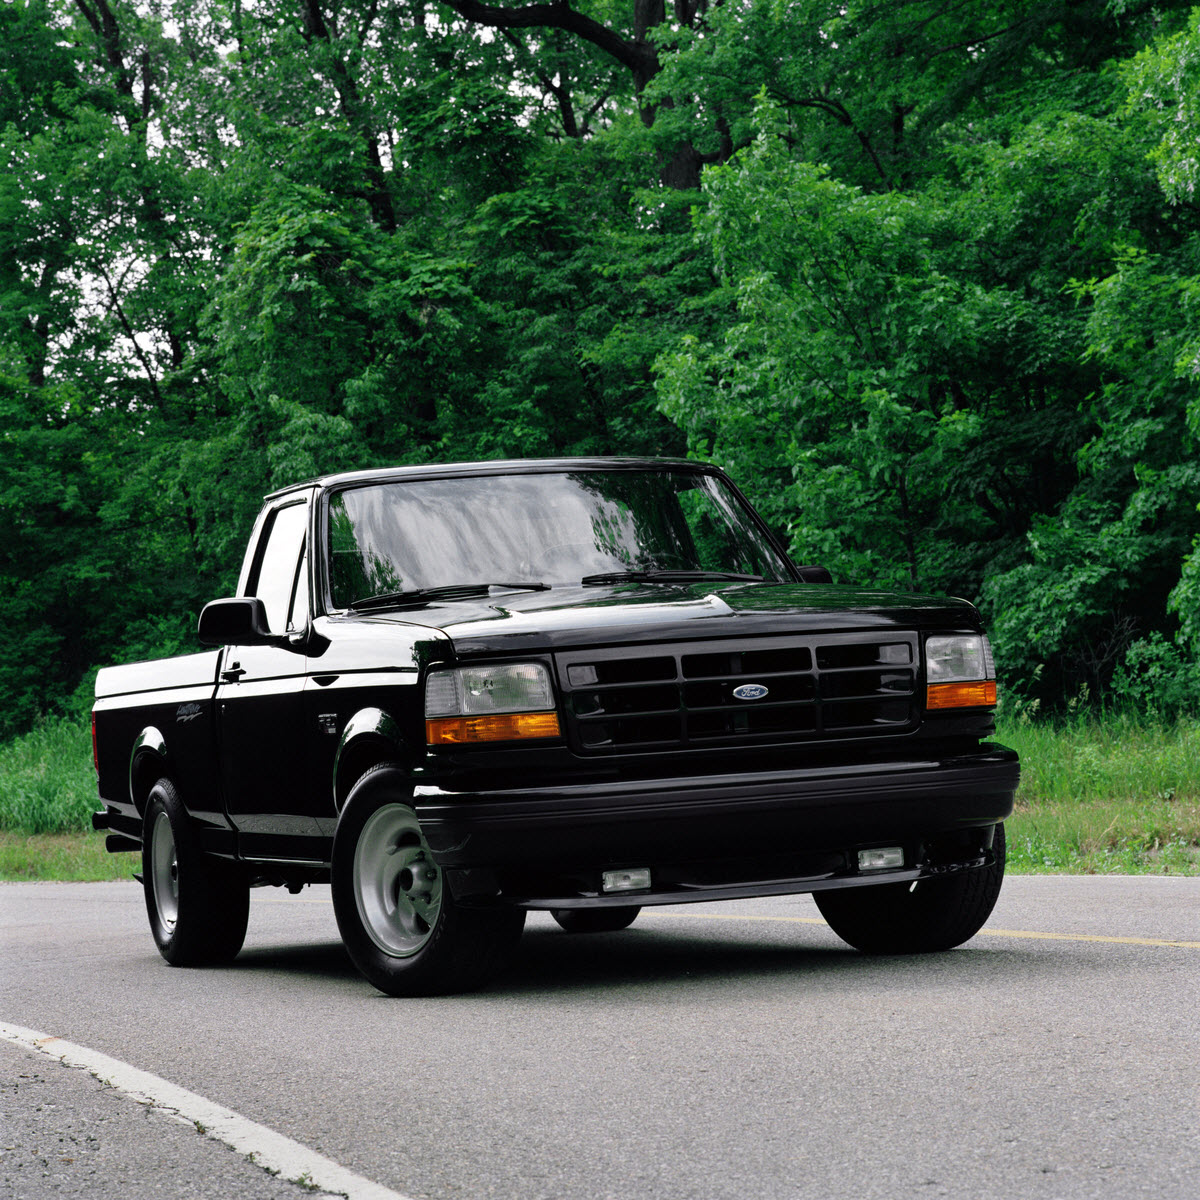 1993 Ford F150 Lightning 1993 – 1995 and 1999 – 2004 Ford F-150 SVT Lightning ...